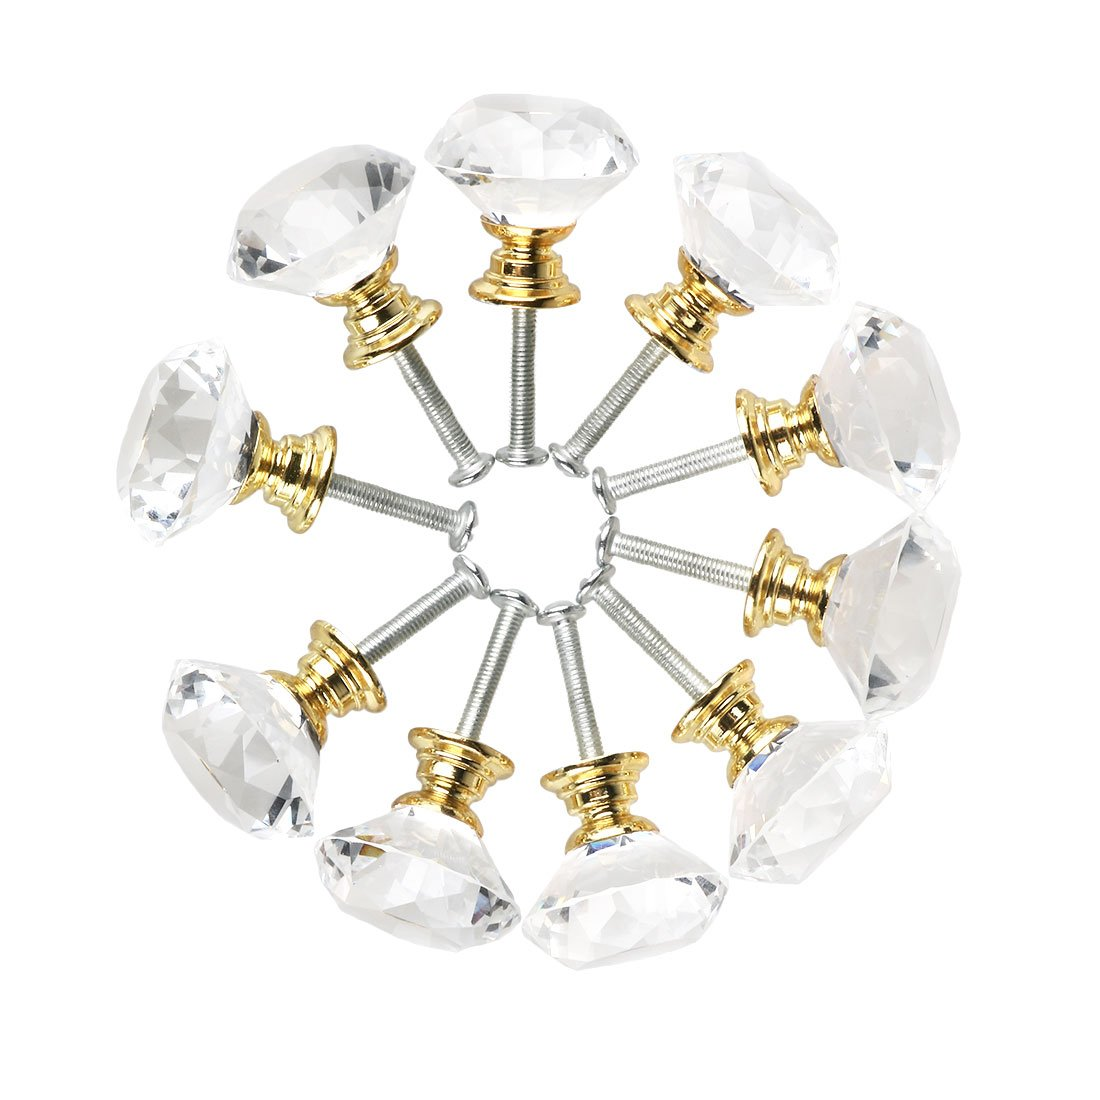 uxcell Drawer Knob Pull Handle 40mm Crystal Glass Diamond Shape Cabinet Door Drawer Knobs with Screws for Home Office Cupboard Wardrobe DIY (10pcs, Gold Base)